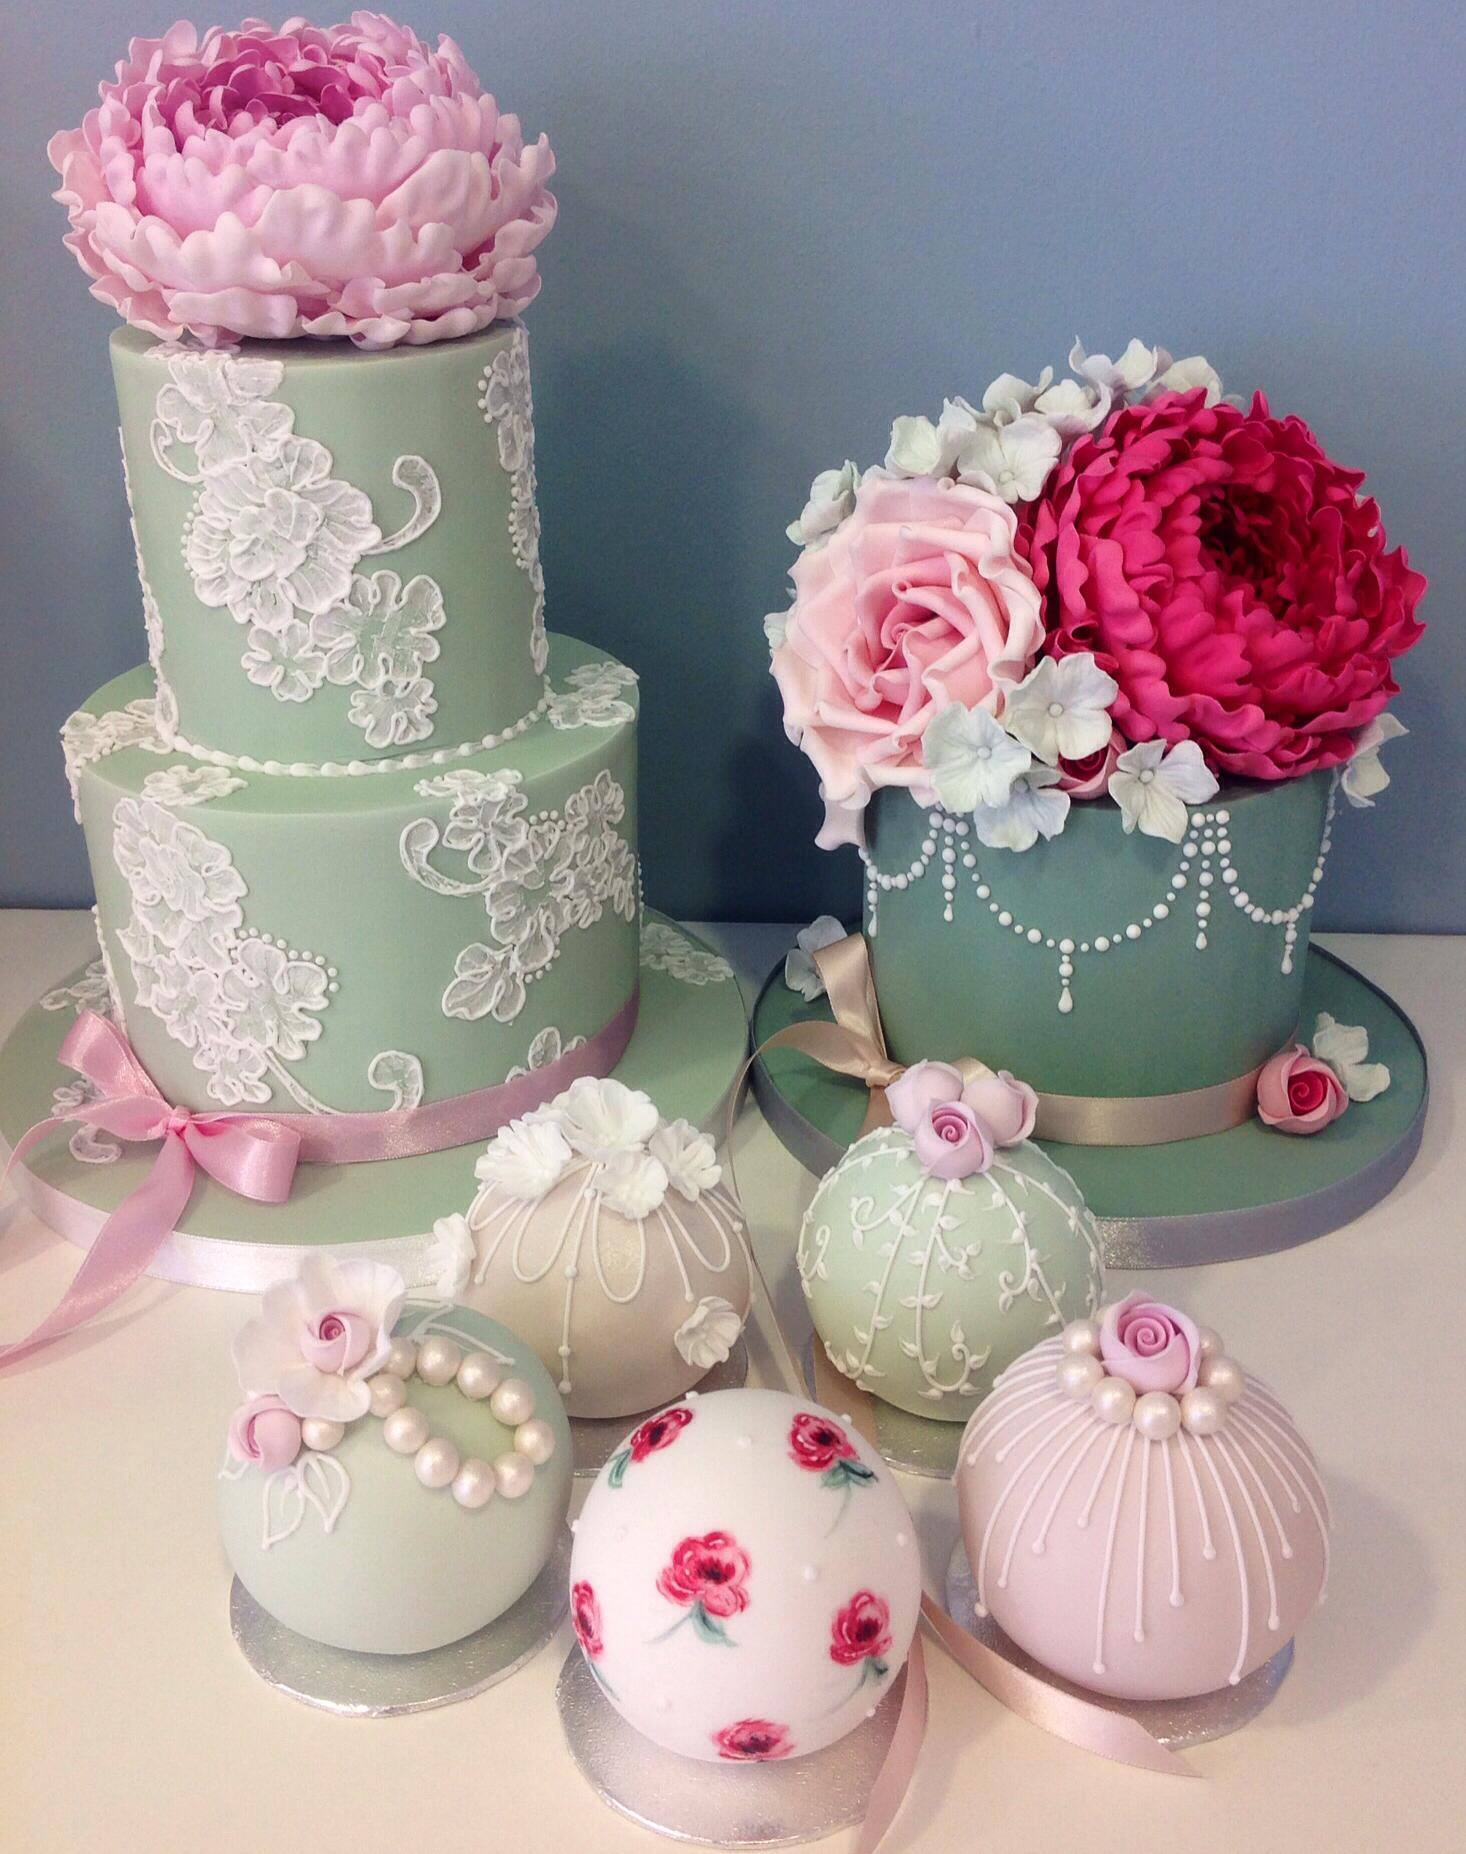 wedding-cake-ideas-5-06202014nz